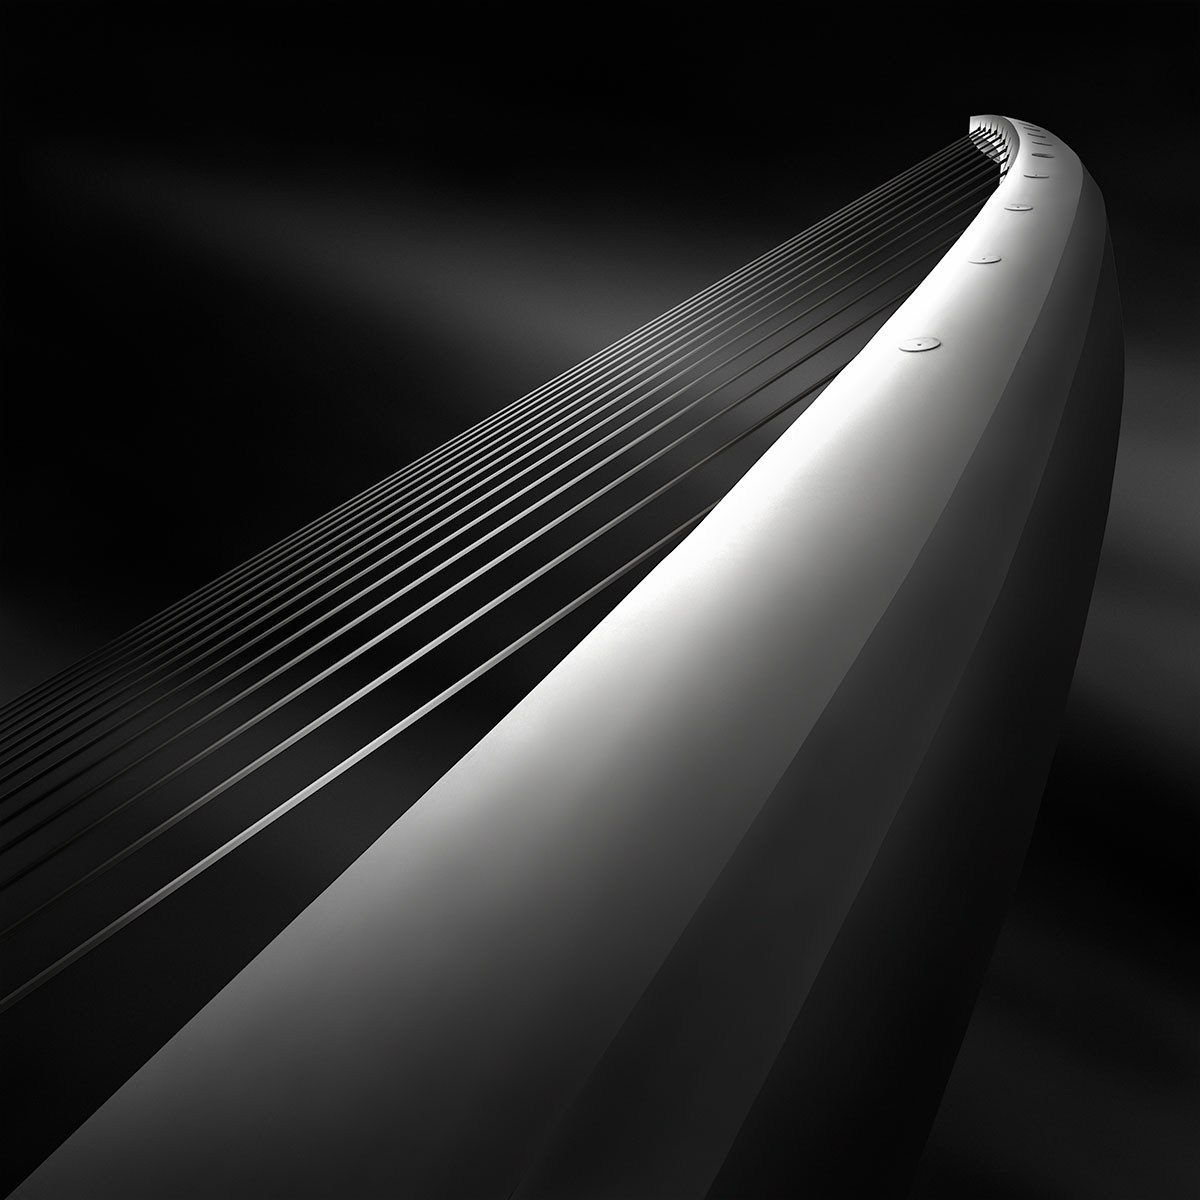 Like A Harp's Strings III - Rising - Calatrava Bridge Athens © Julia Anna Gospodarou 2012 - Award-Winning Architectural Photography